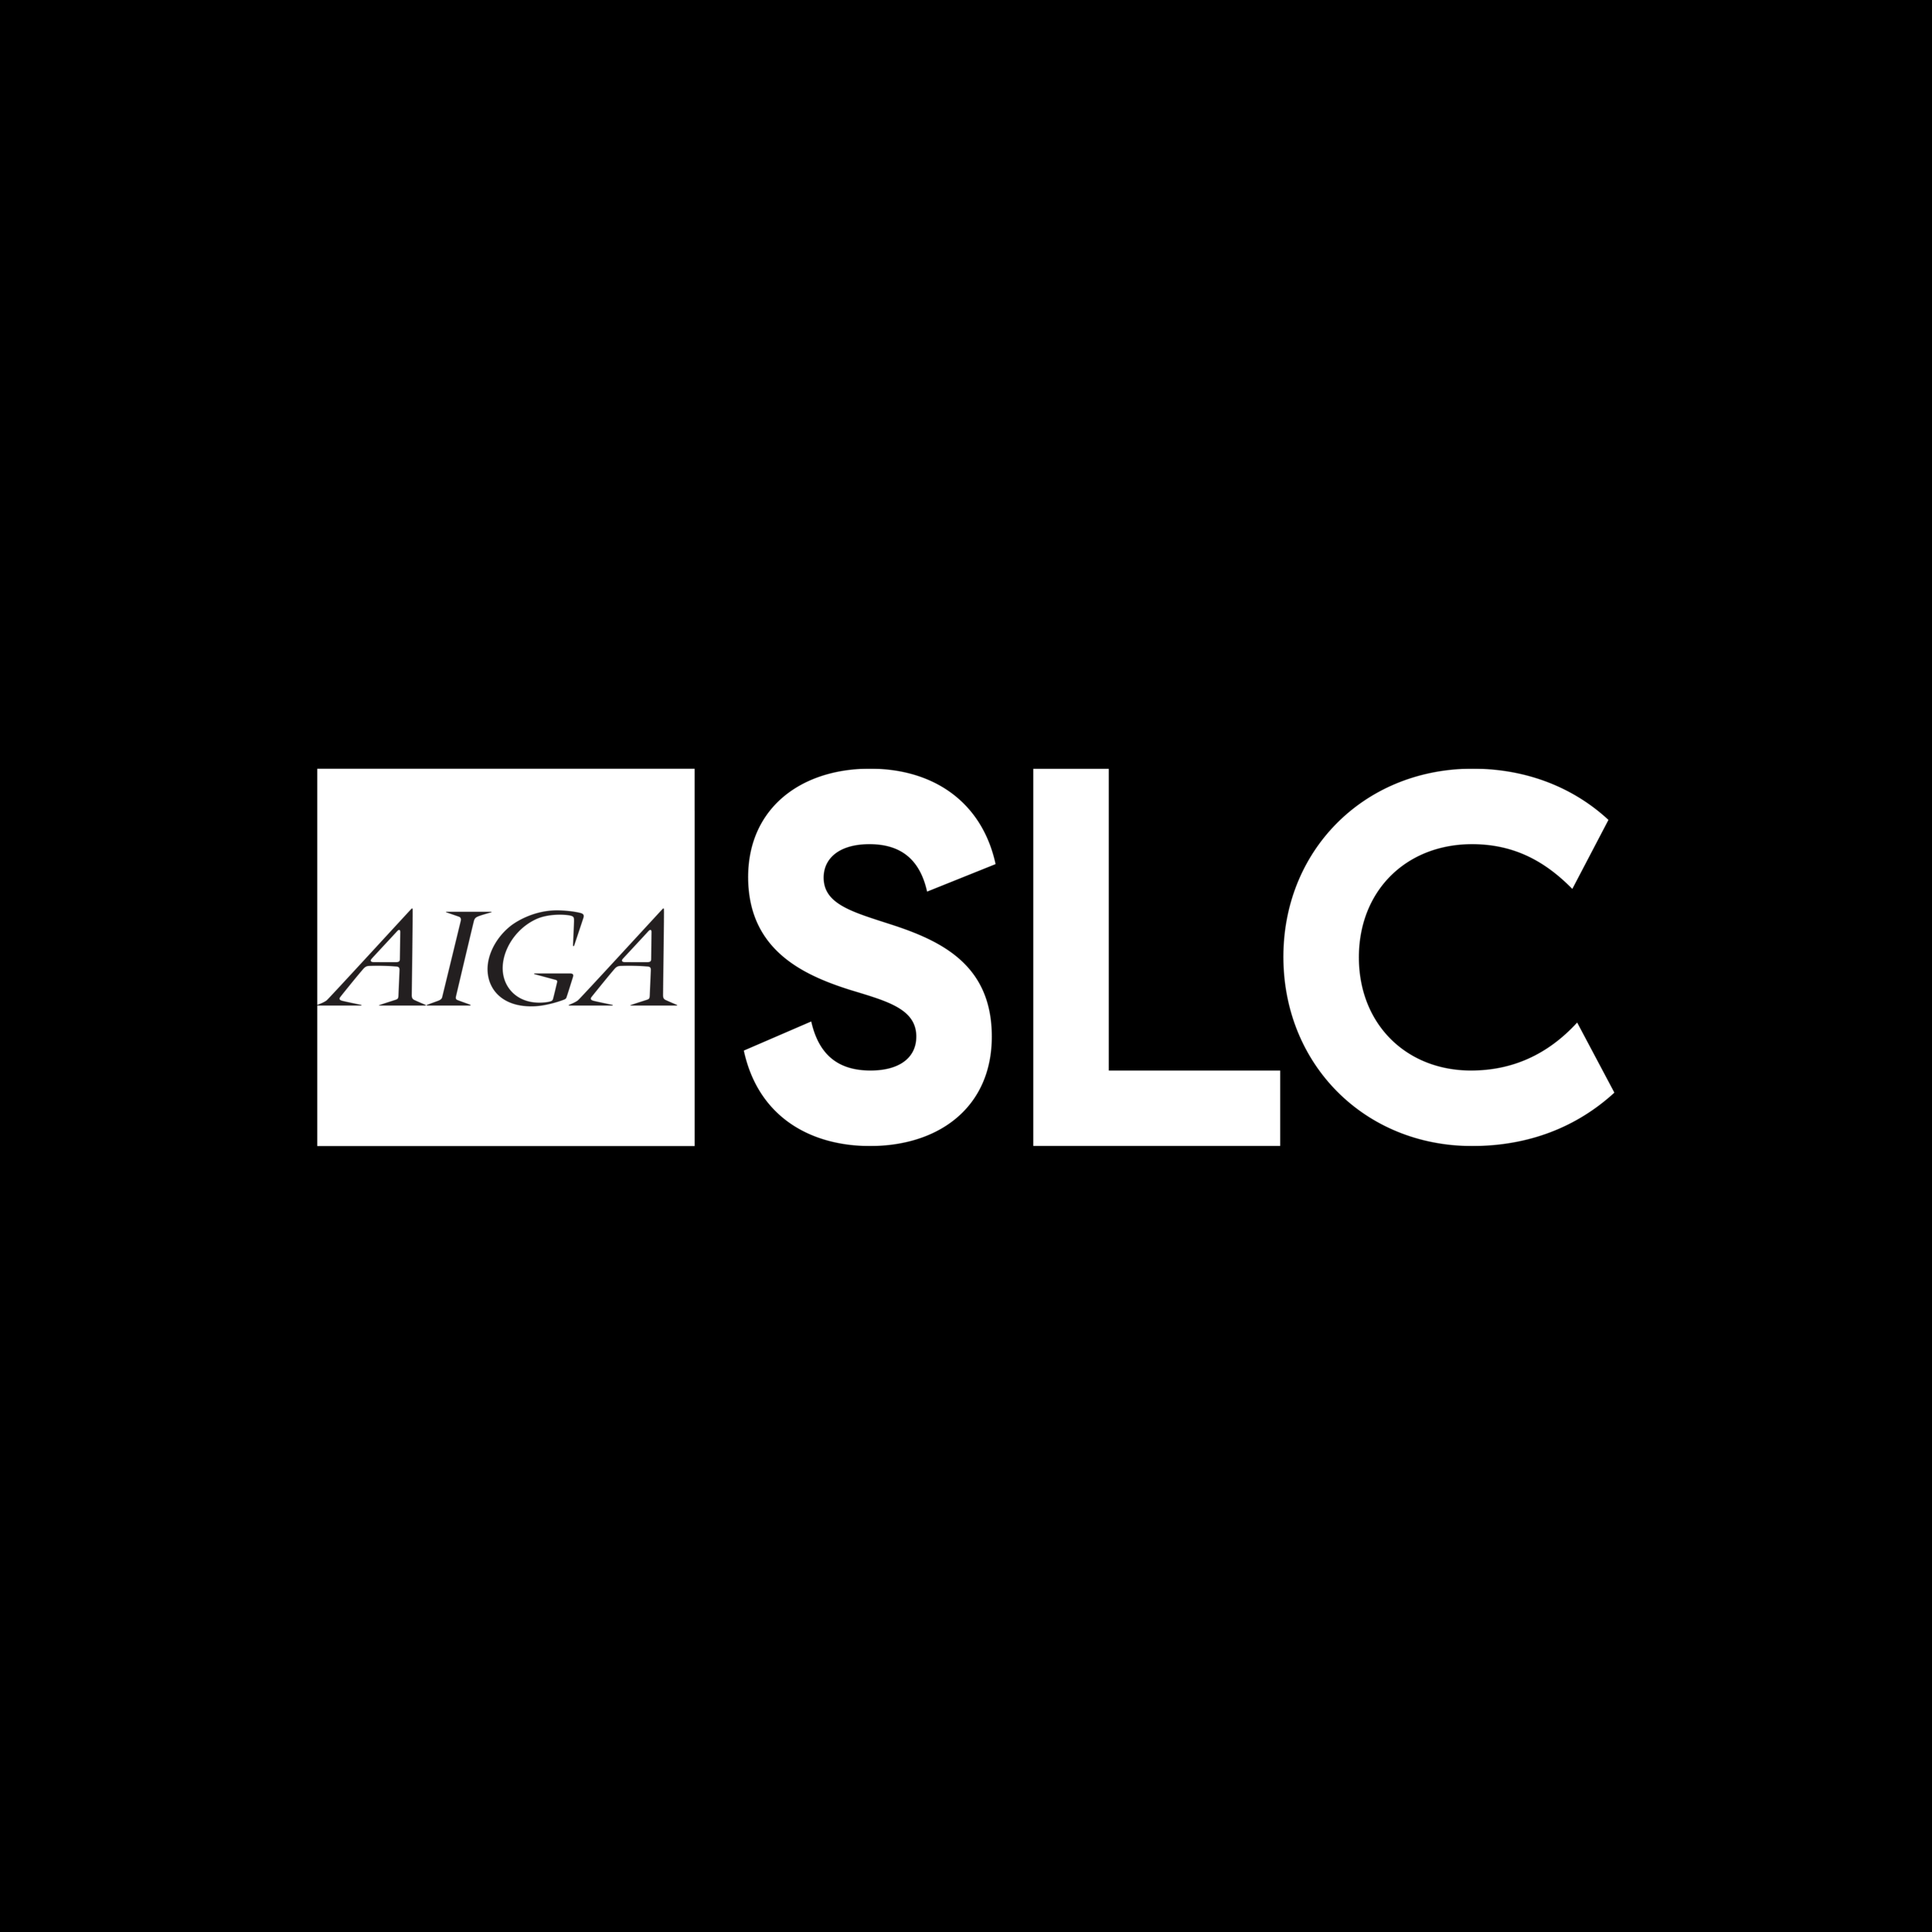 AIGA Salt Lake City - The professional association for design.|saltlakecity.aiga.org—AIGA Salt Lake City joins hands with RFP during 2018 to help launch and sustain our new book-making initiative, Local Collections.